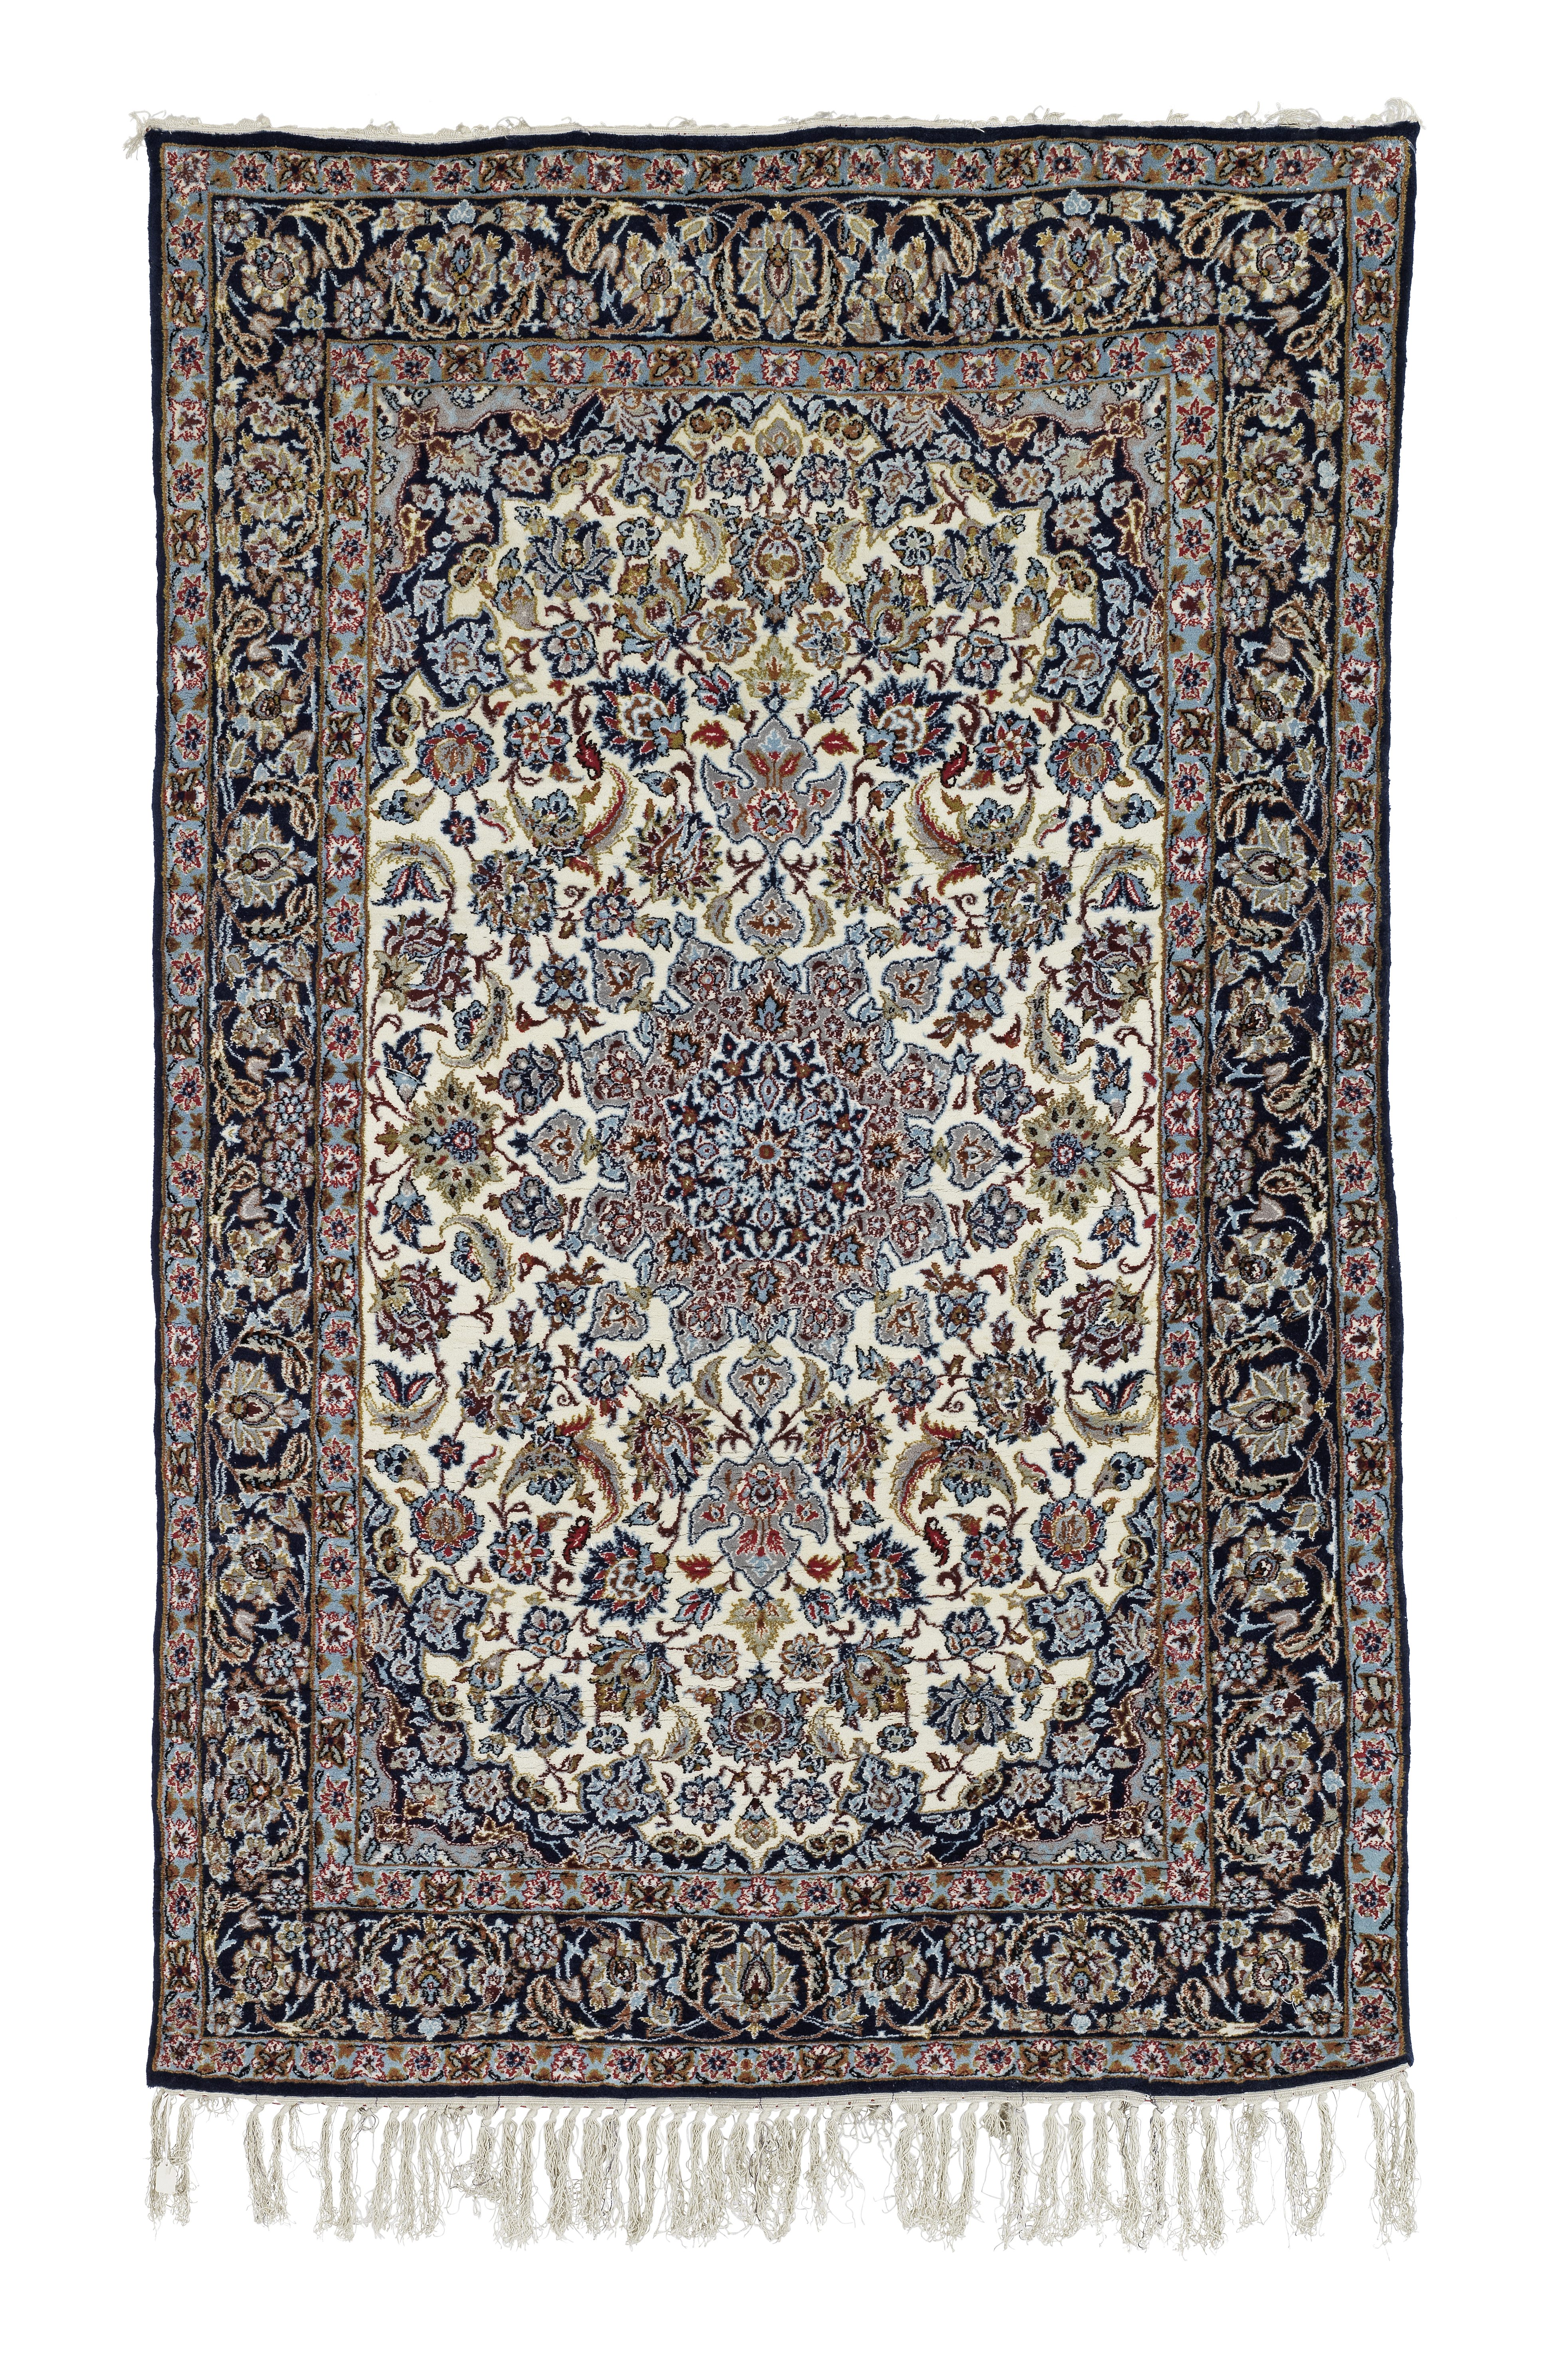 A Large Cream Ground Nian Medallion Carpet and a Smaller Cream Ground Nian Medallion Carpet 242cm...